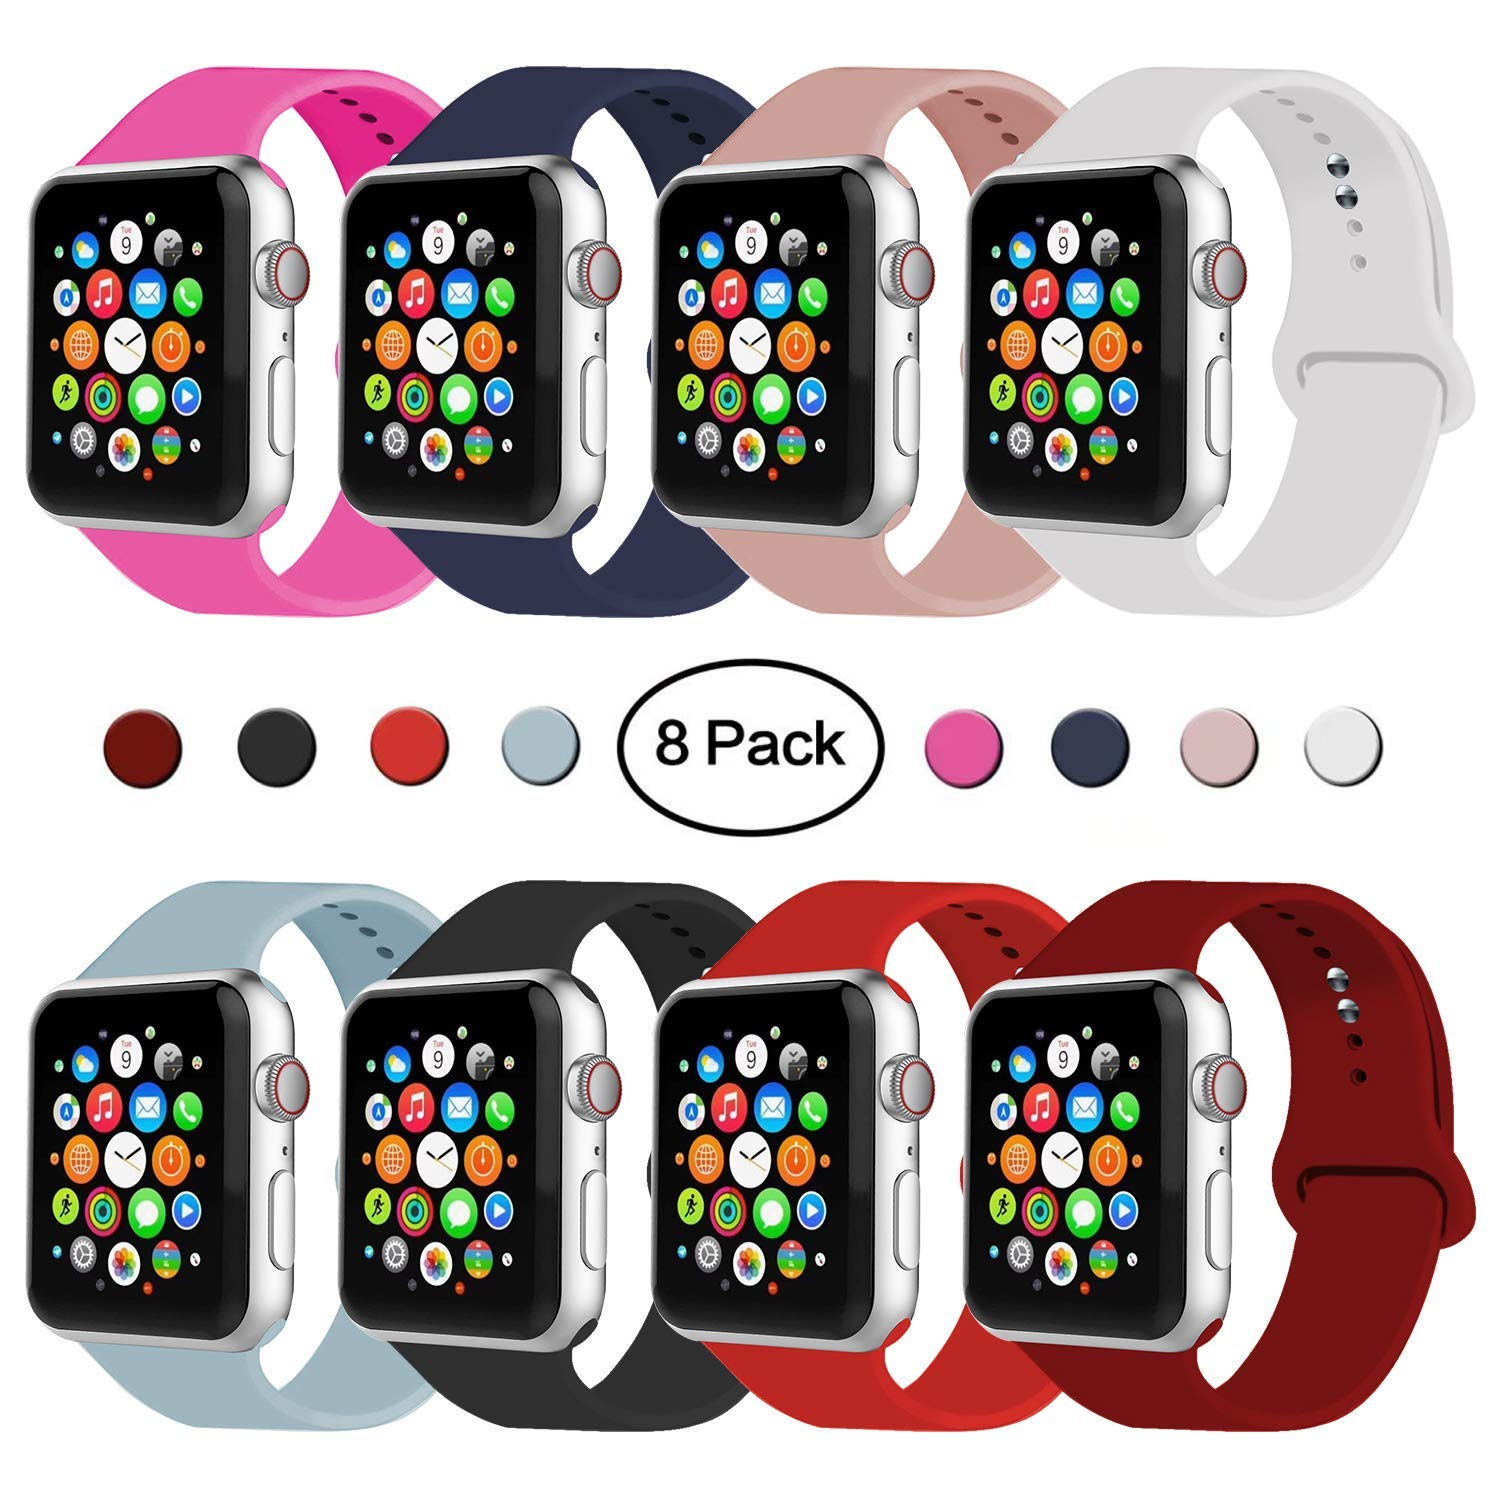 IYOU Sport Band Compatible with Watch Band 38MM 42MM 40MM 44MM, Soft Silicone Replacement Sport Strap Compatible with 2018 Watch Series 4/3/2/1 (8 PACK,42MM, S/M) by IYOU